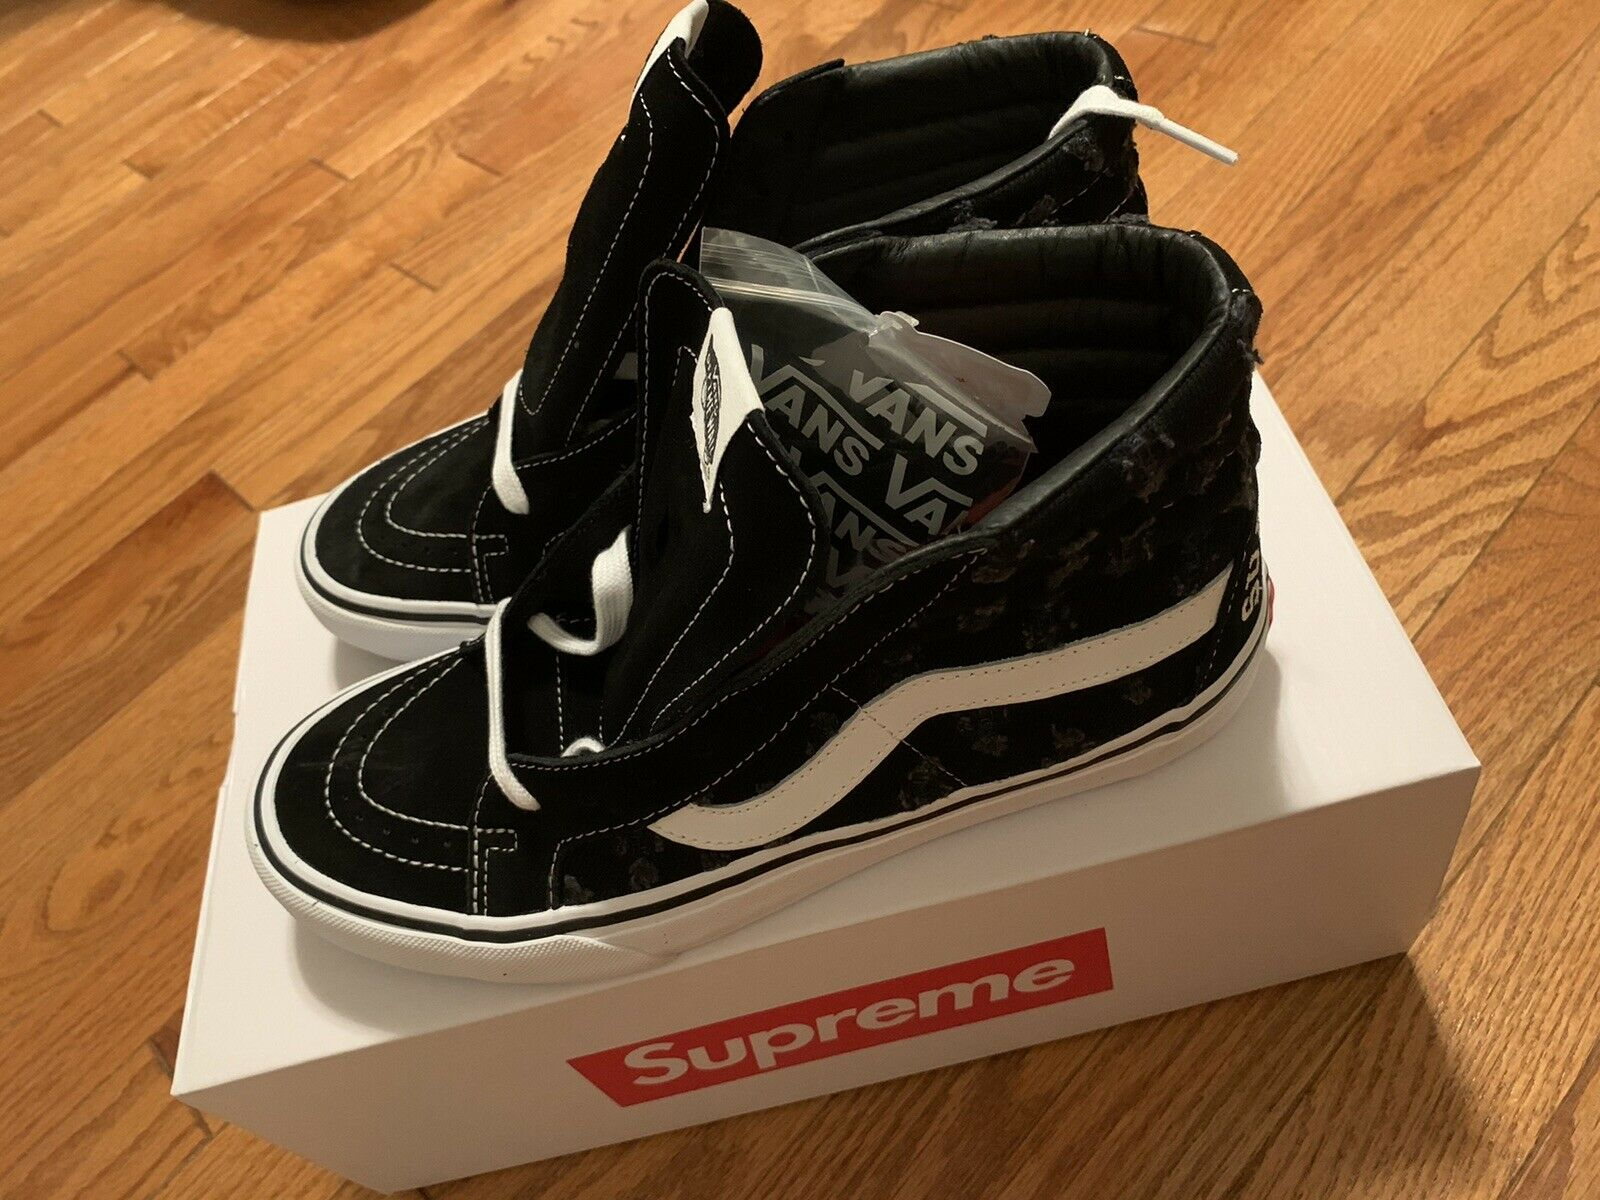 Vans Sk8 Hi Supreme Hole Punch Denim Black